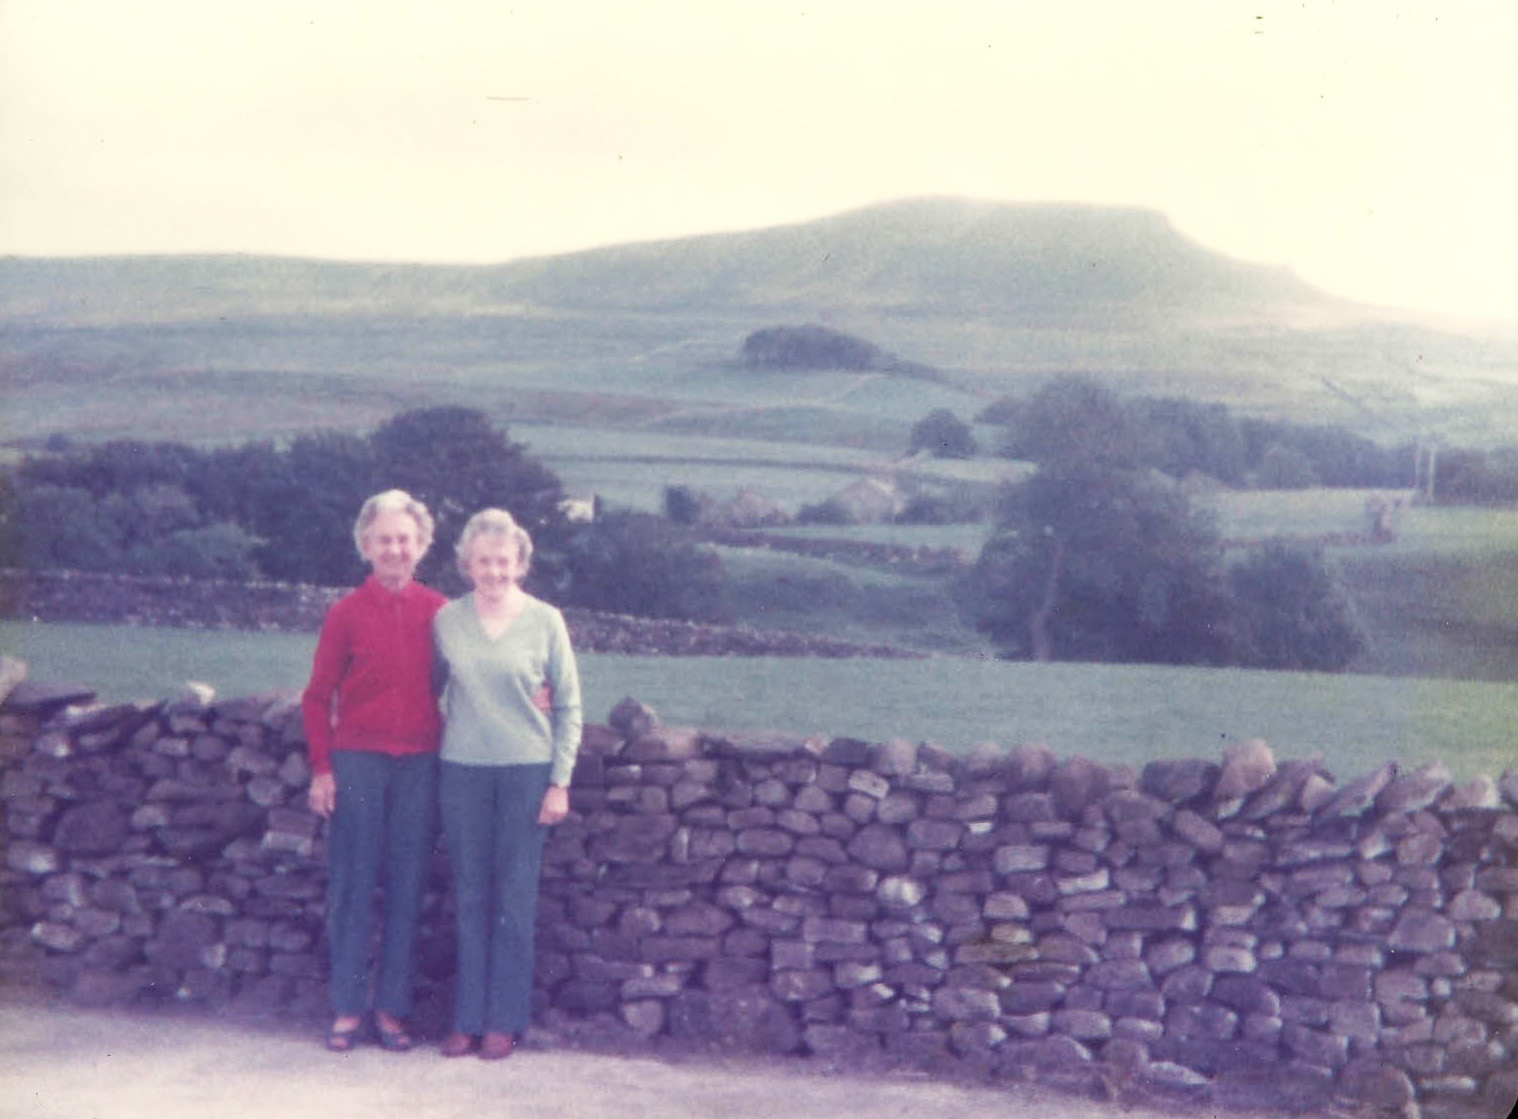 I can't remember if my Grandma (on the left), climbed in those shoes!